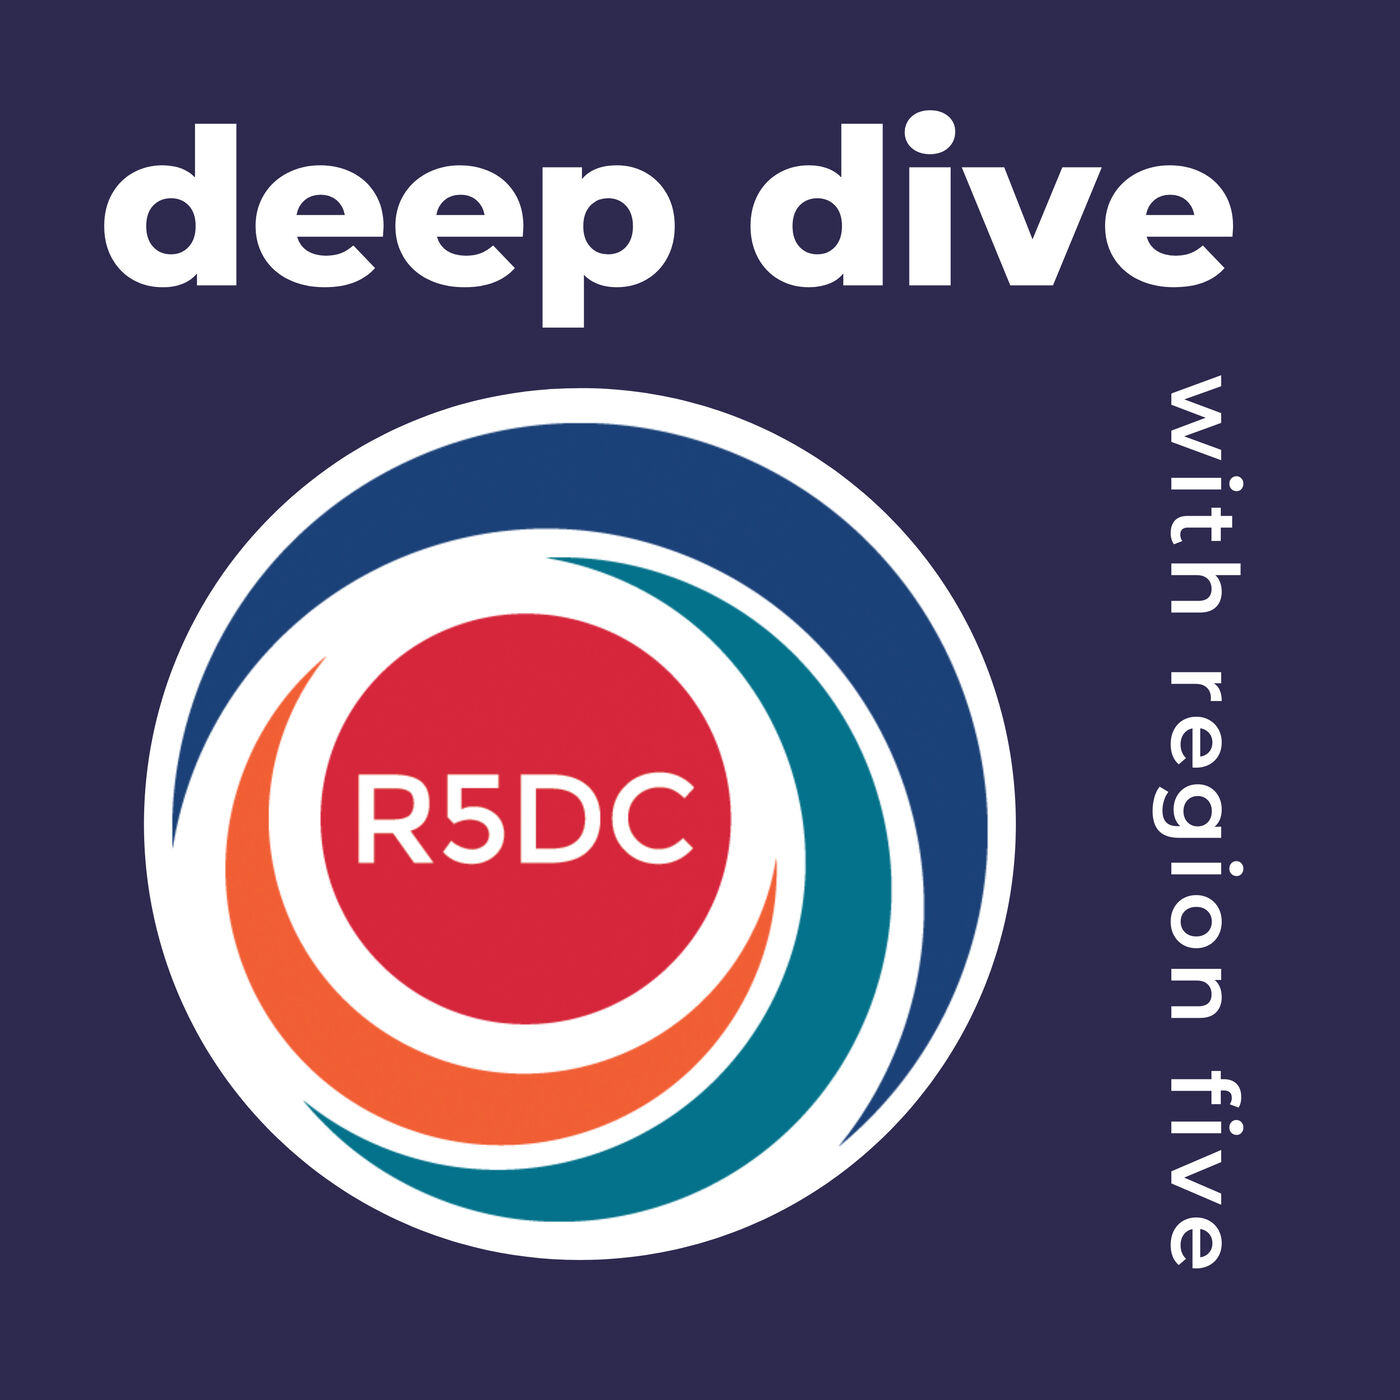 R5DC Overview